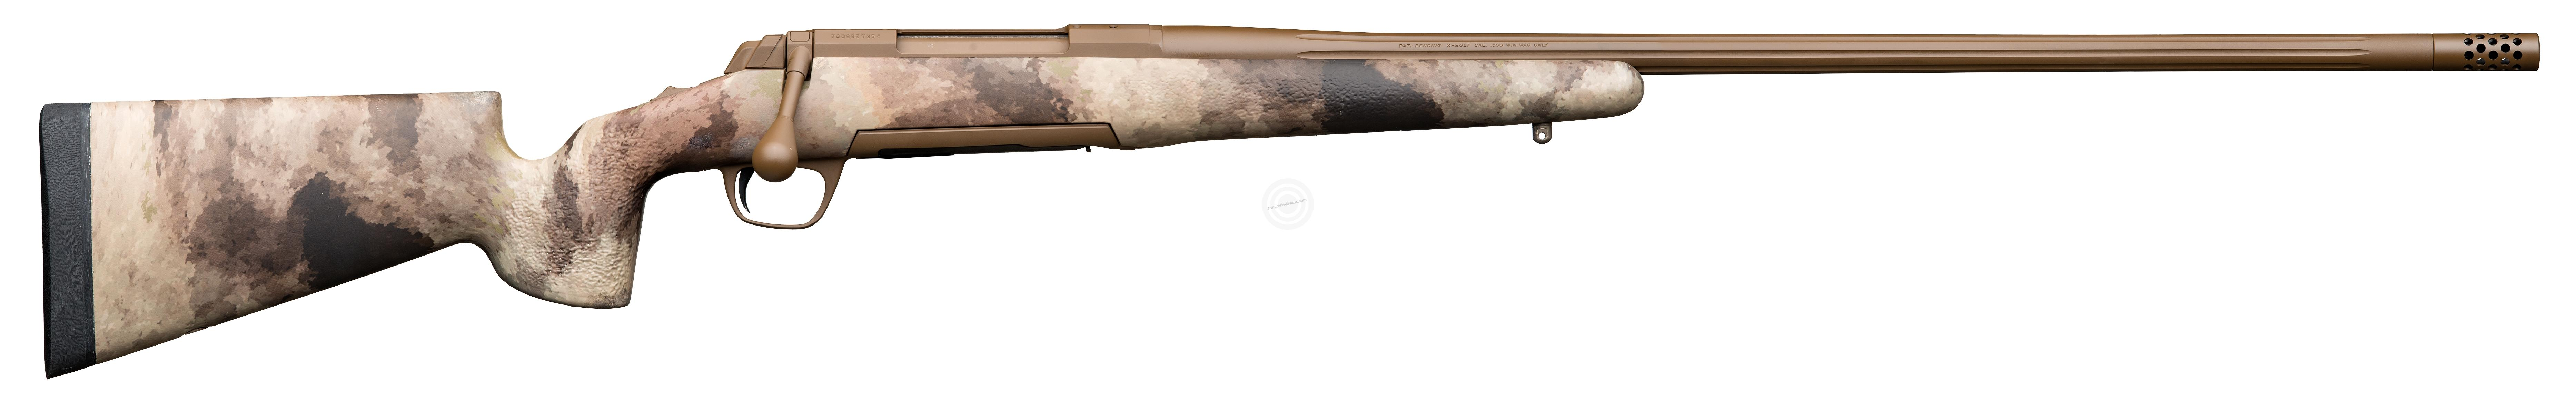 BROWNING X-Bolt SF Long Range McMILLAN cal.308 win